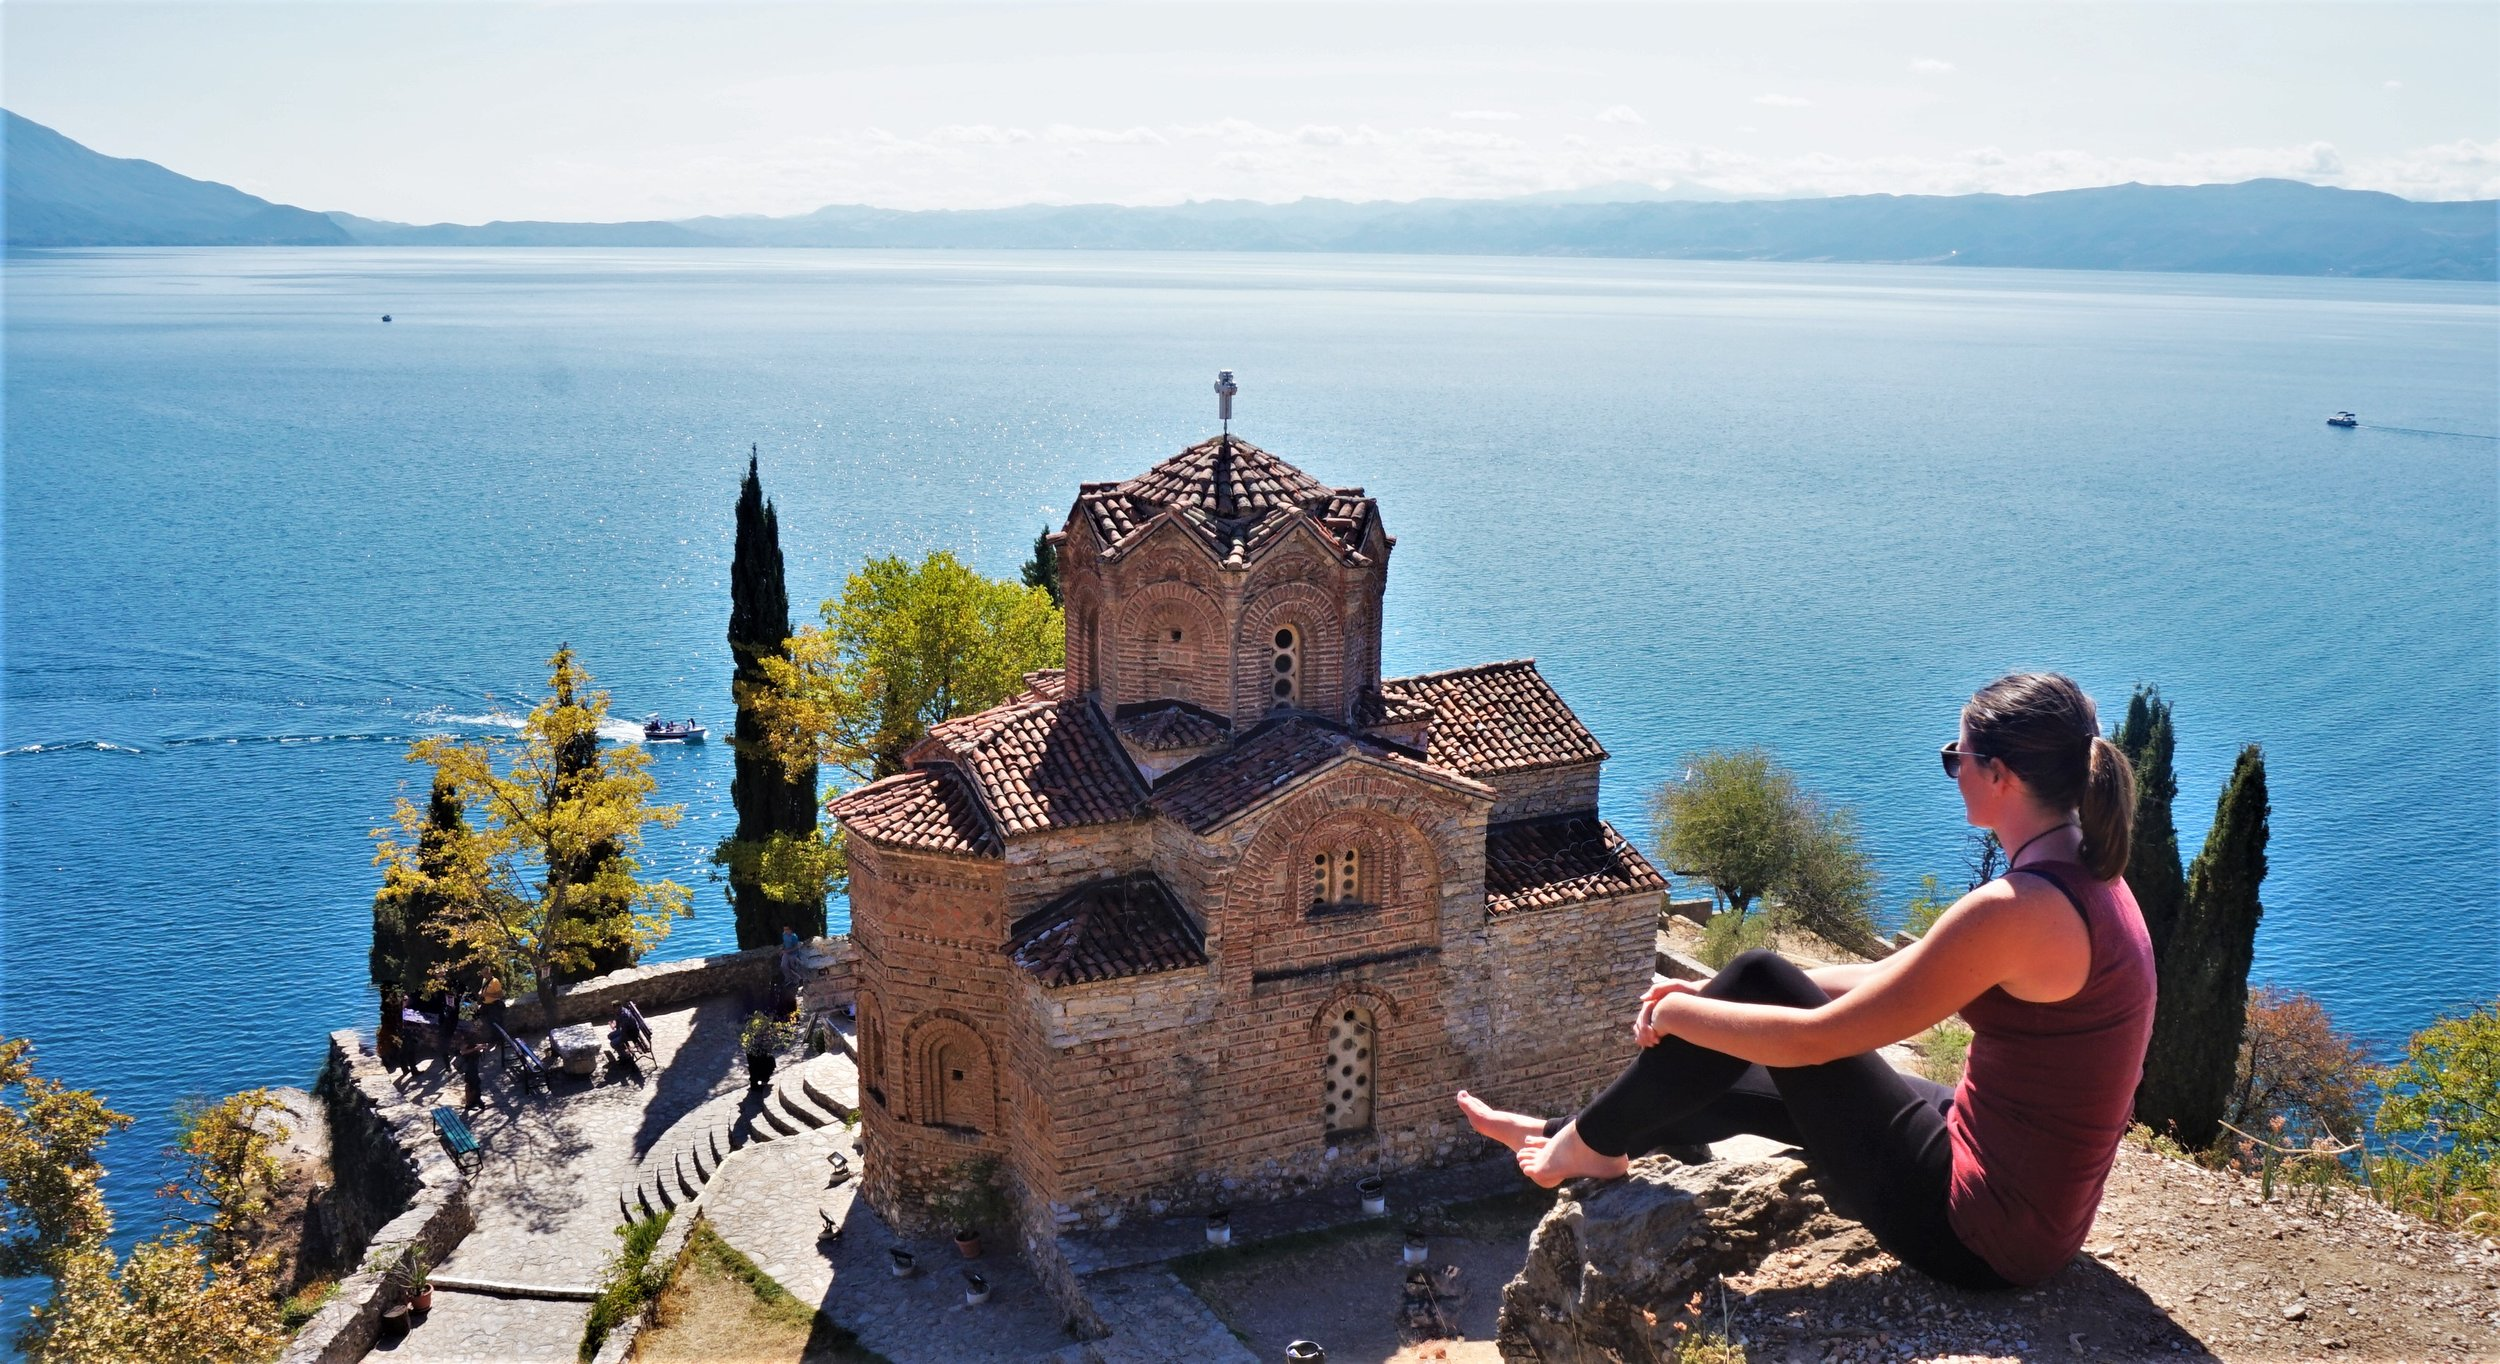 Lake Ohrid is a very beautiful region and definitely possible to do as a day trip from Tirana